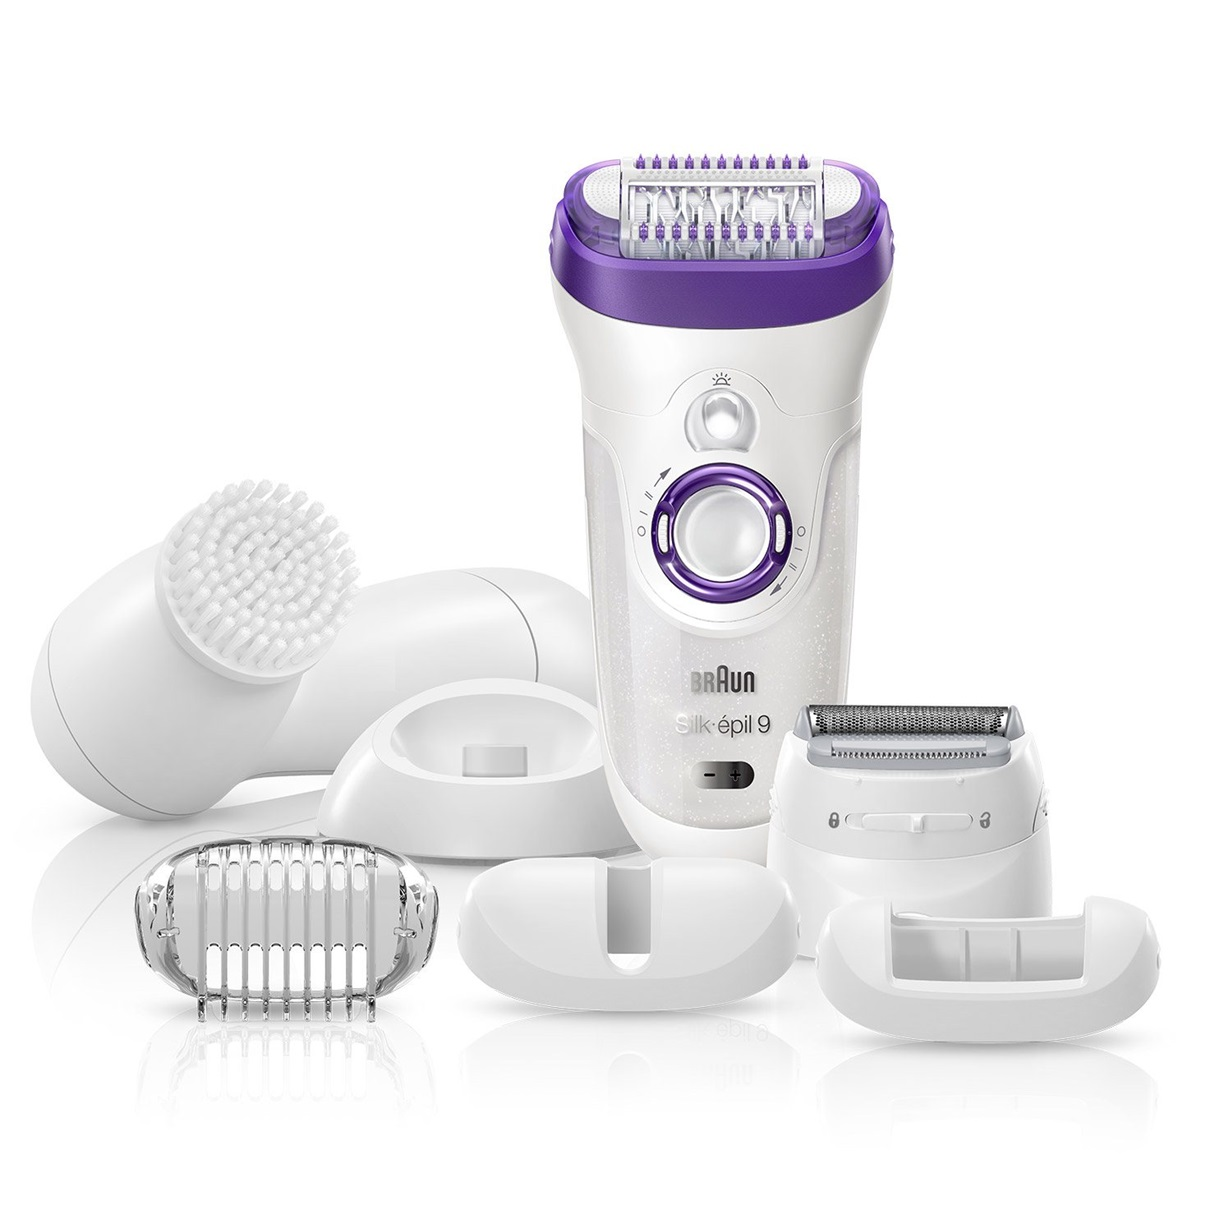 Silk-épil 9 - 9579 Wet&Dry Legs, Body & Face Epilator & Shaver + Brush